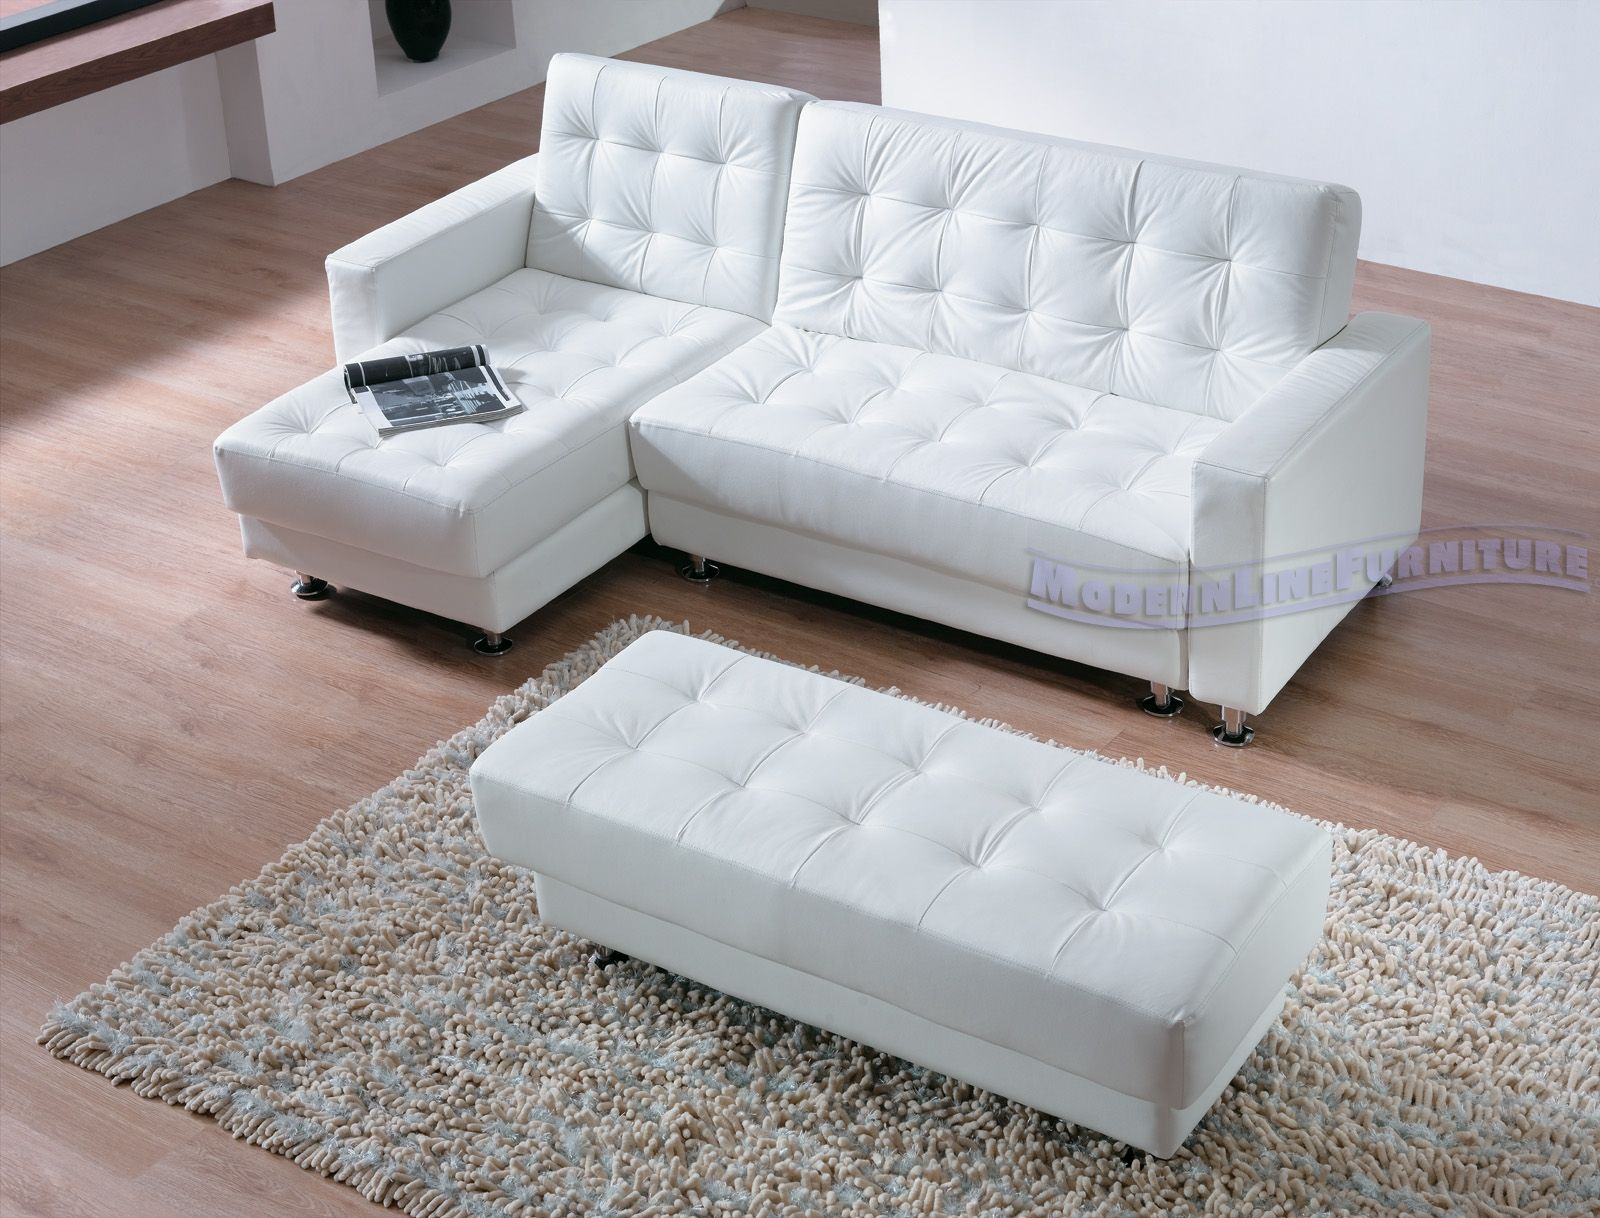 Modern line furniture small couch bed set 900